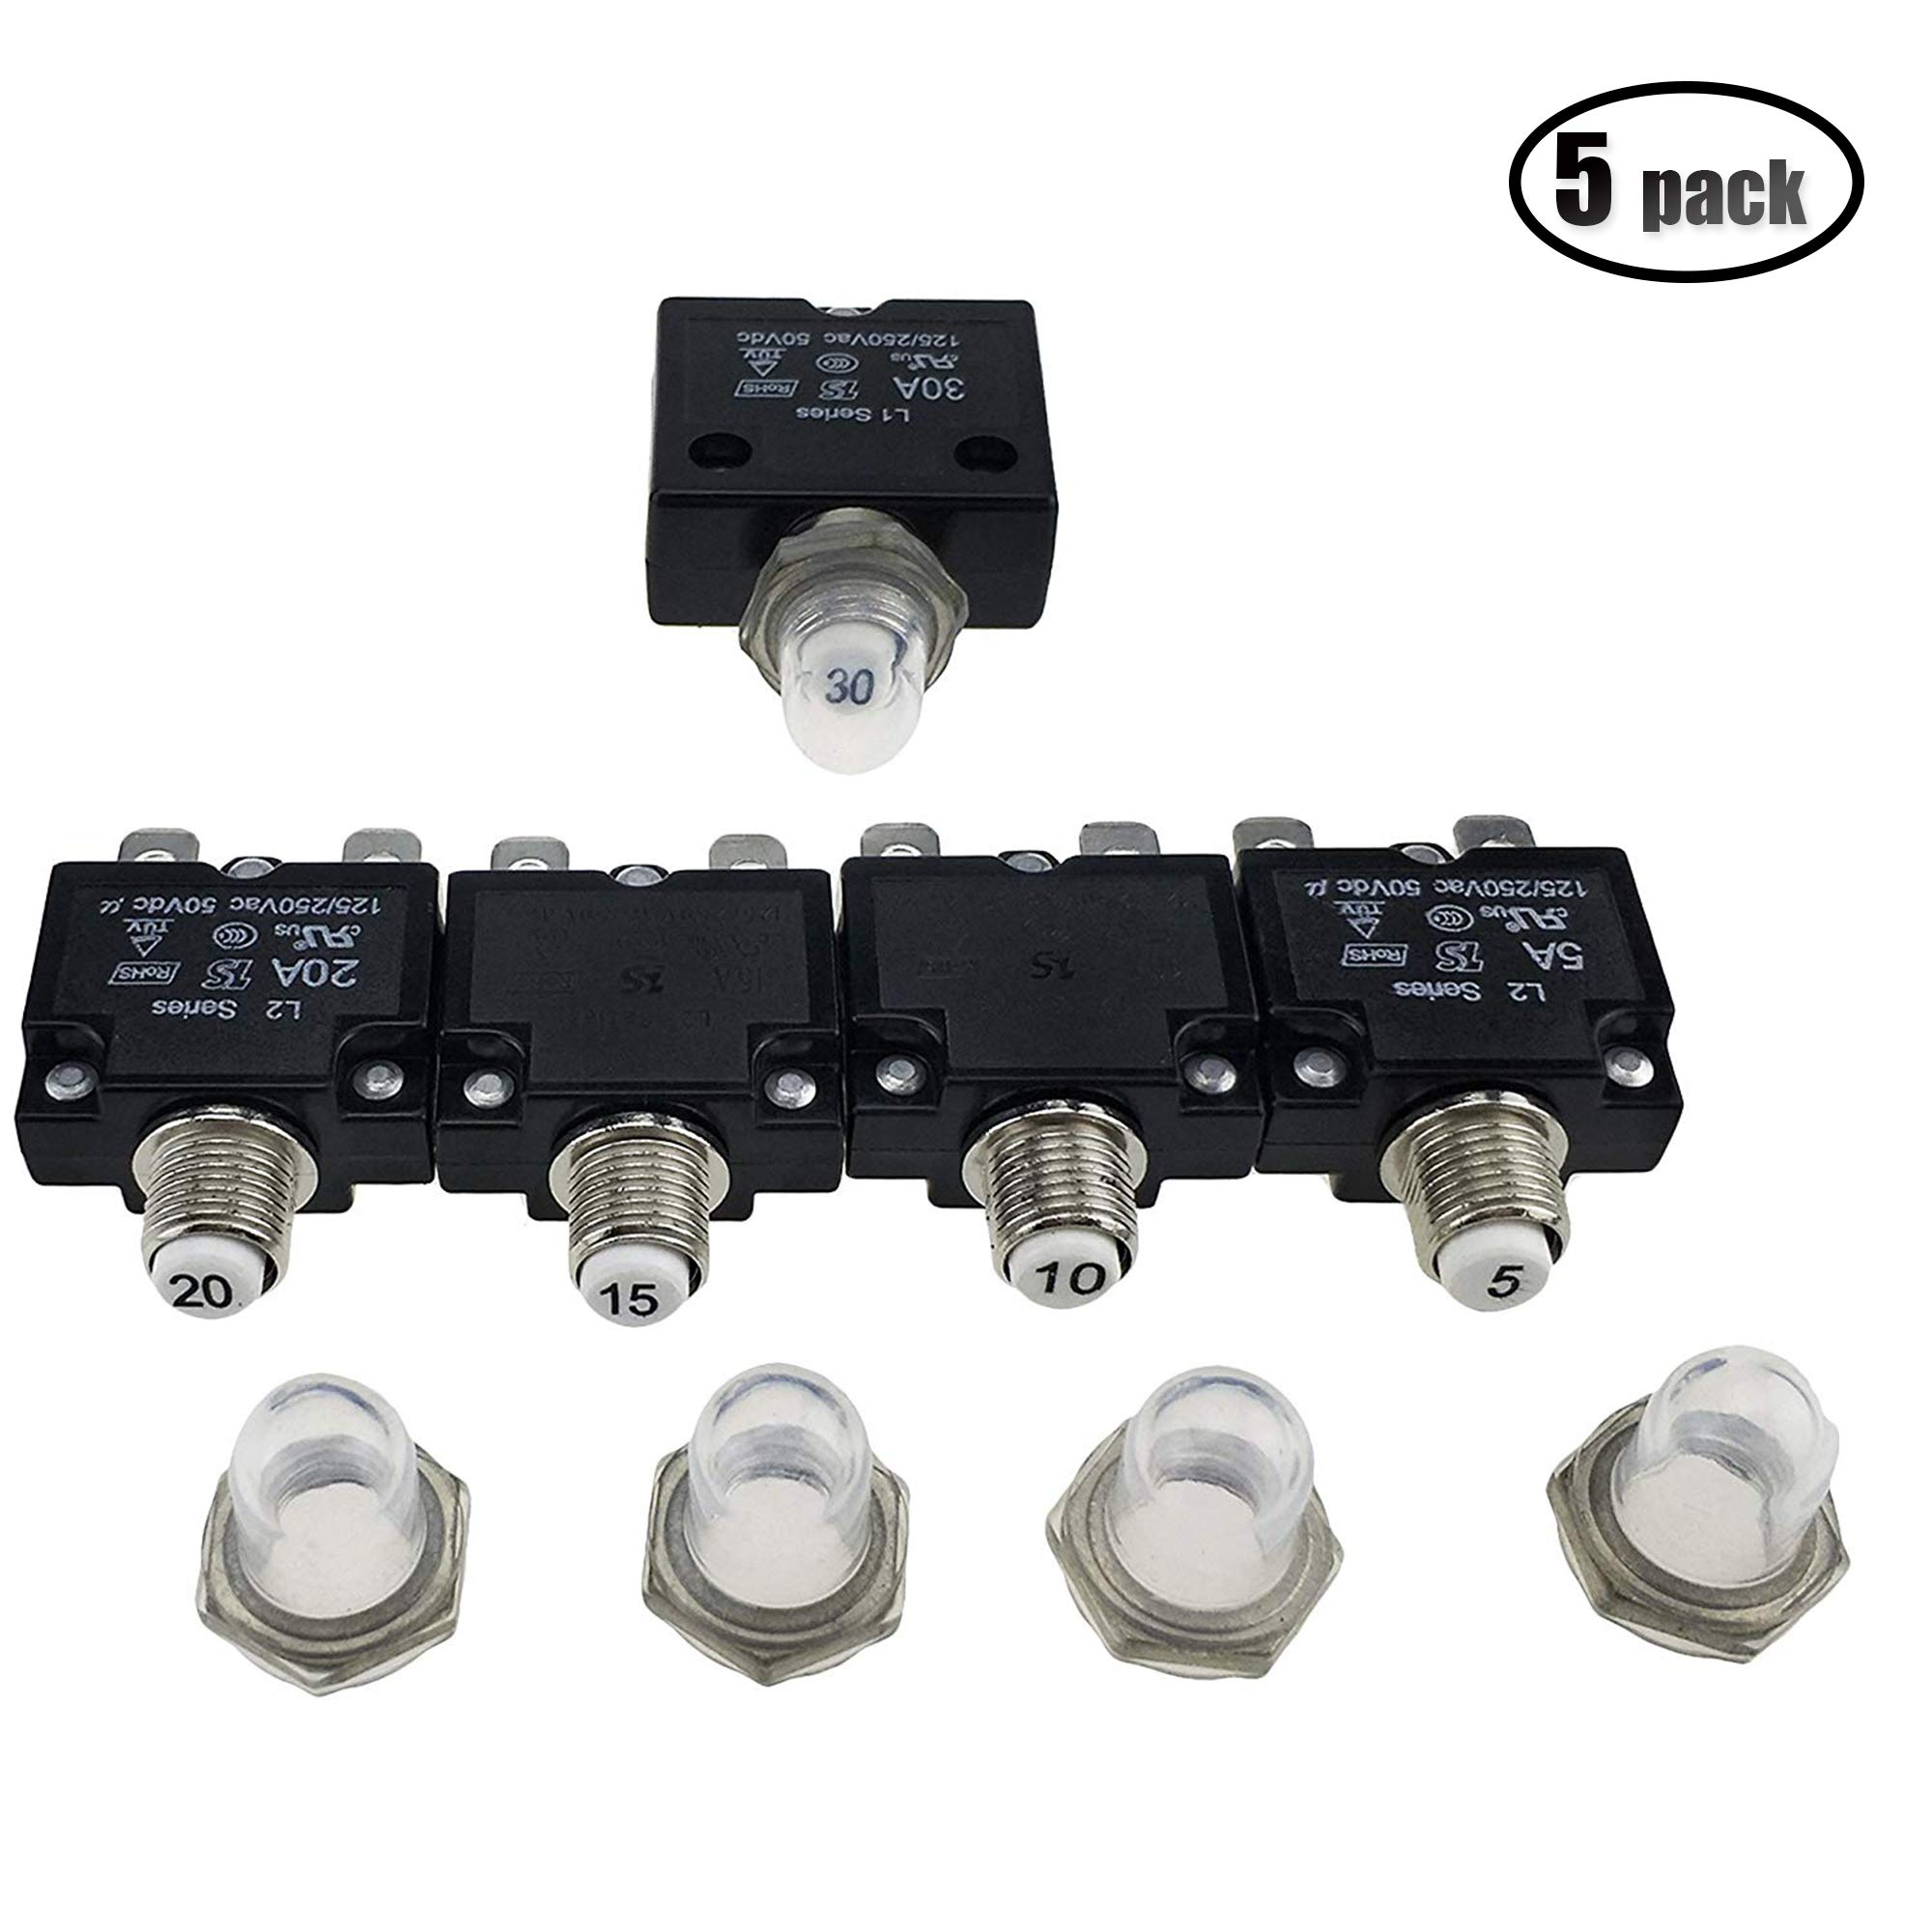 IZTOSS 5PCS 5Amp 10Amp 15Amp 20Amp 30Amp Circuit Breakers with manual reset Waterproof Button transparent Cover DC50V AC125-250V with Quick Connect Terminals by IZTOSS